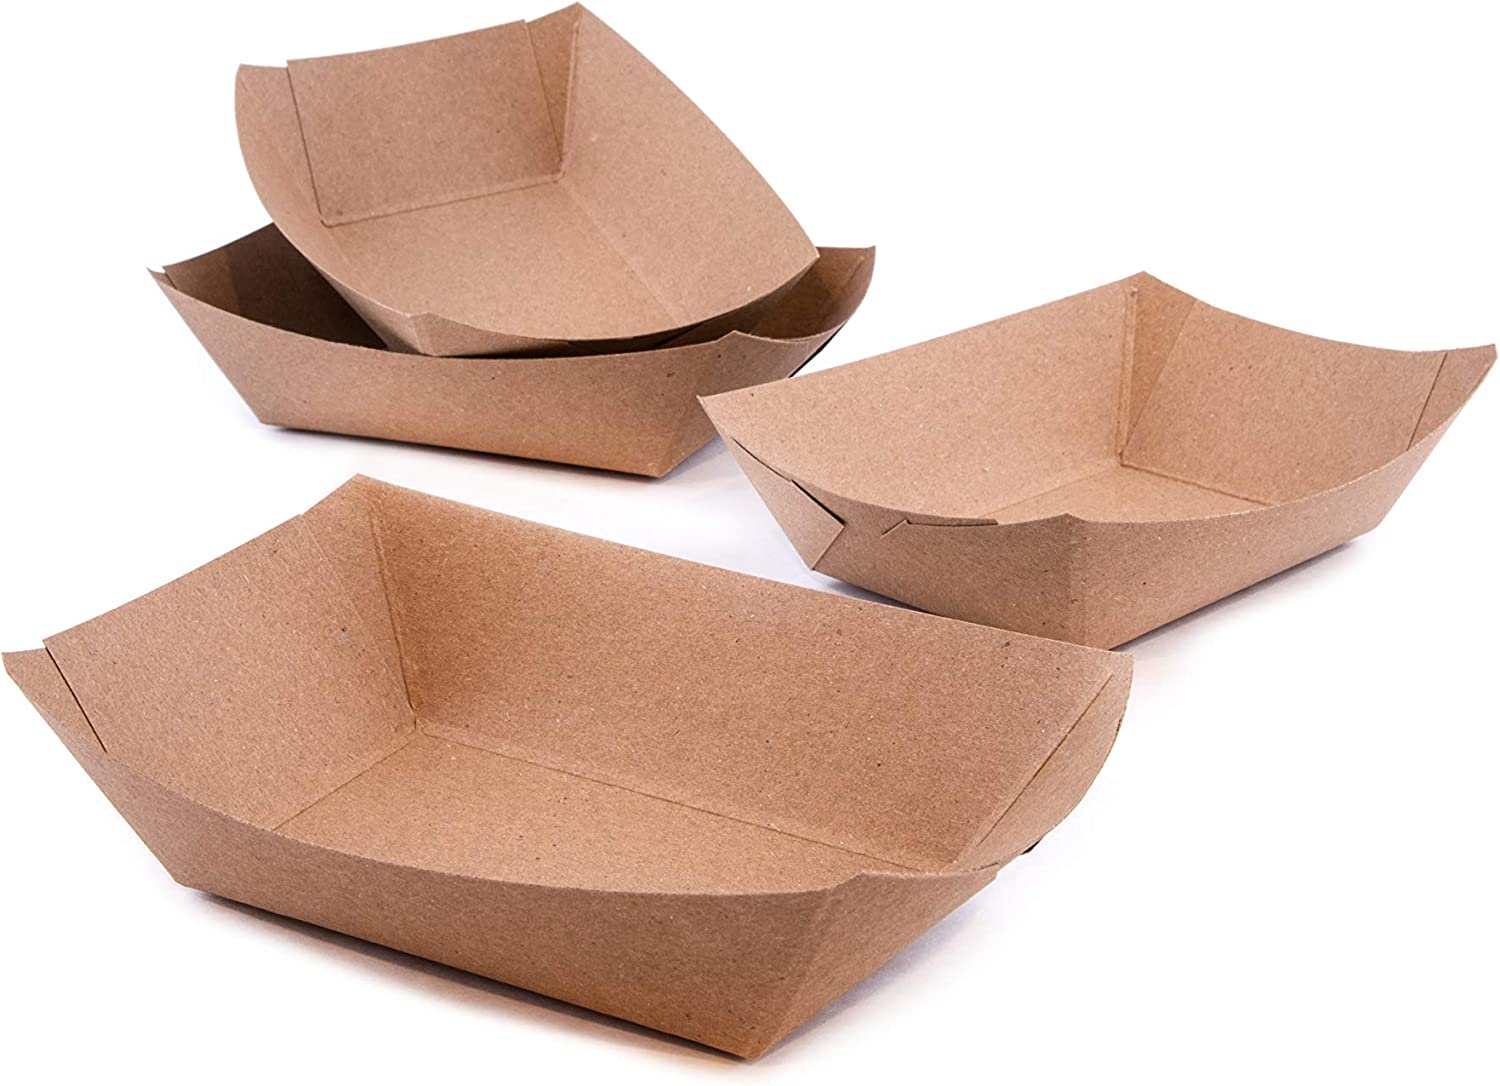 PaperMi Brown Paper Food Tray - USA Made 2.5lb Disposable Kraft Hot Dog Tray, Paper Food Trays for Picnics, Carnivals, Camping - Food Serving Tray Holds Hot and Cold Food - (250pcs)